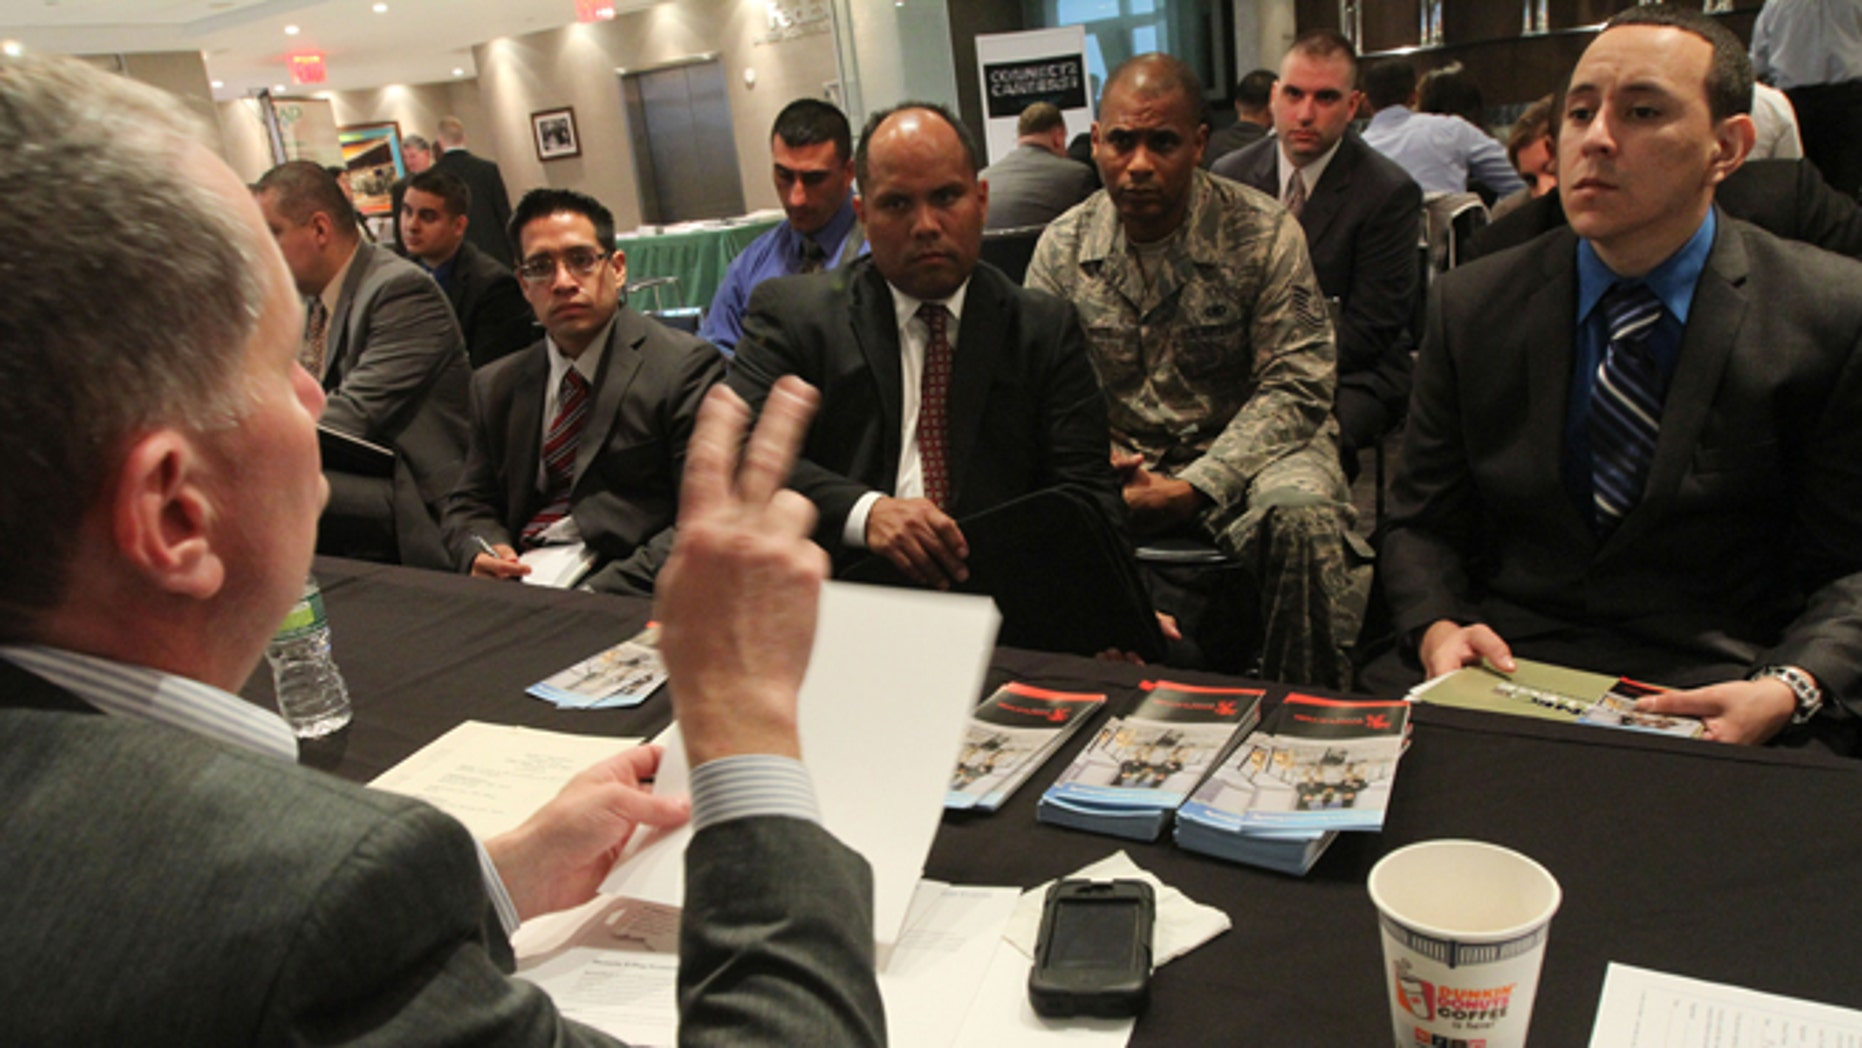 Sept. 28, 2012: Karl Hagstrom, left, of the Stapleton Group talks to veterans about his agency during a job fair introducing veterans to careers in the security and private investigations industry at Yankee Stadium in the Bronx borough of New York.